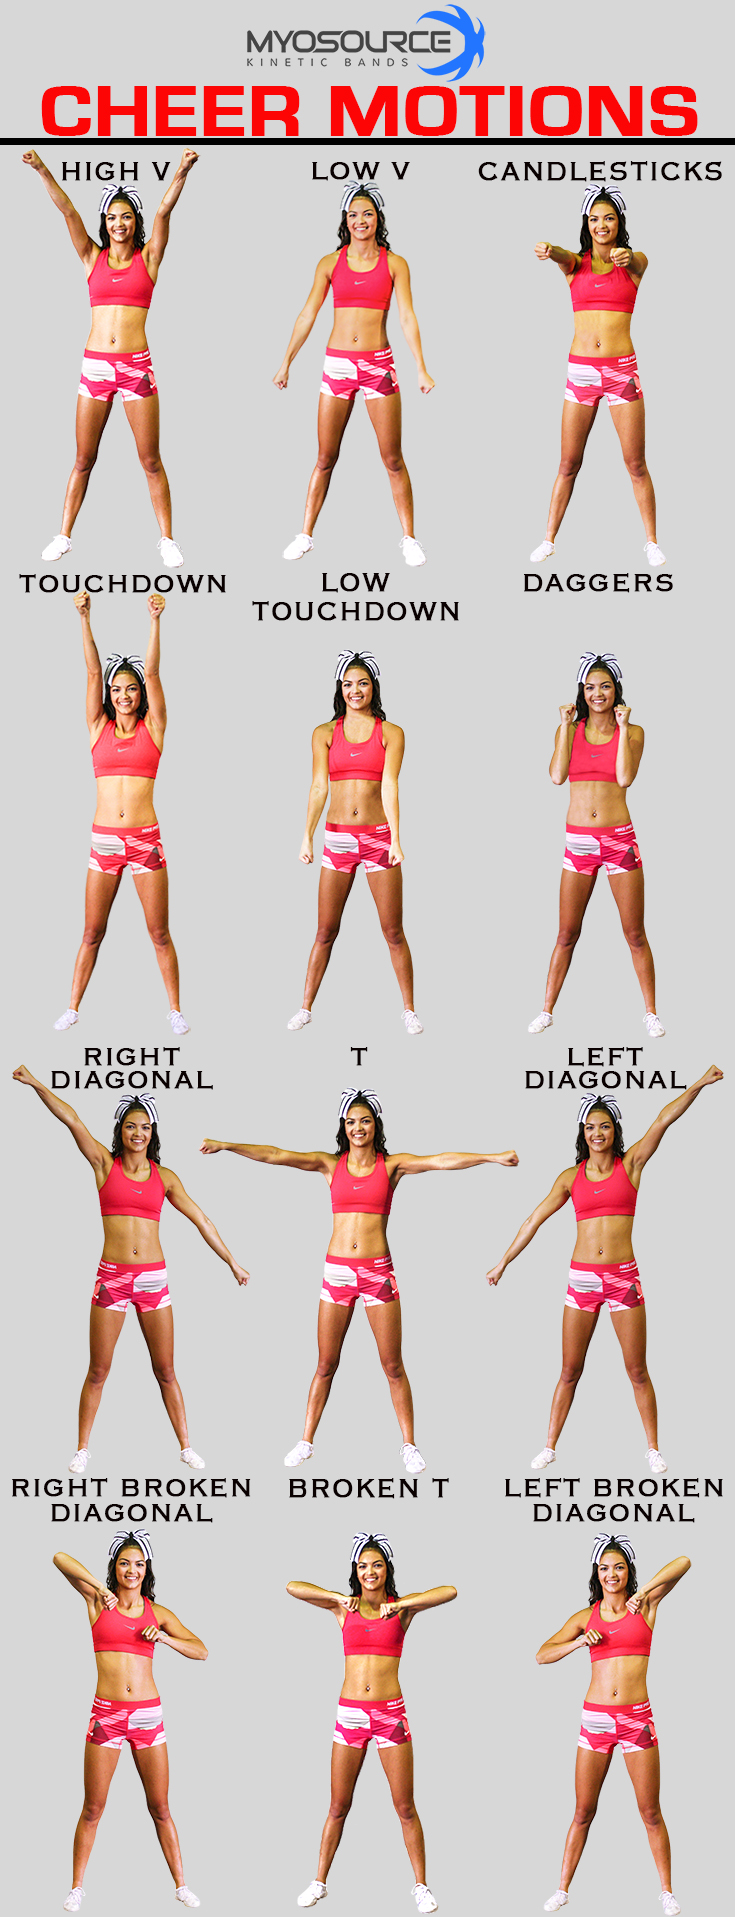 Cheer Motions Chart